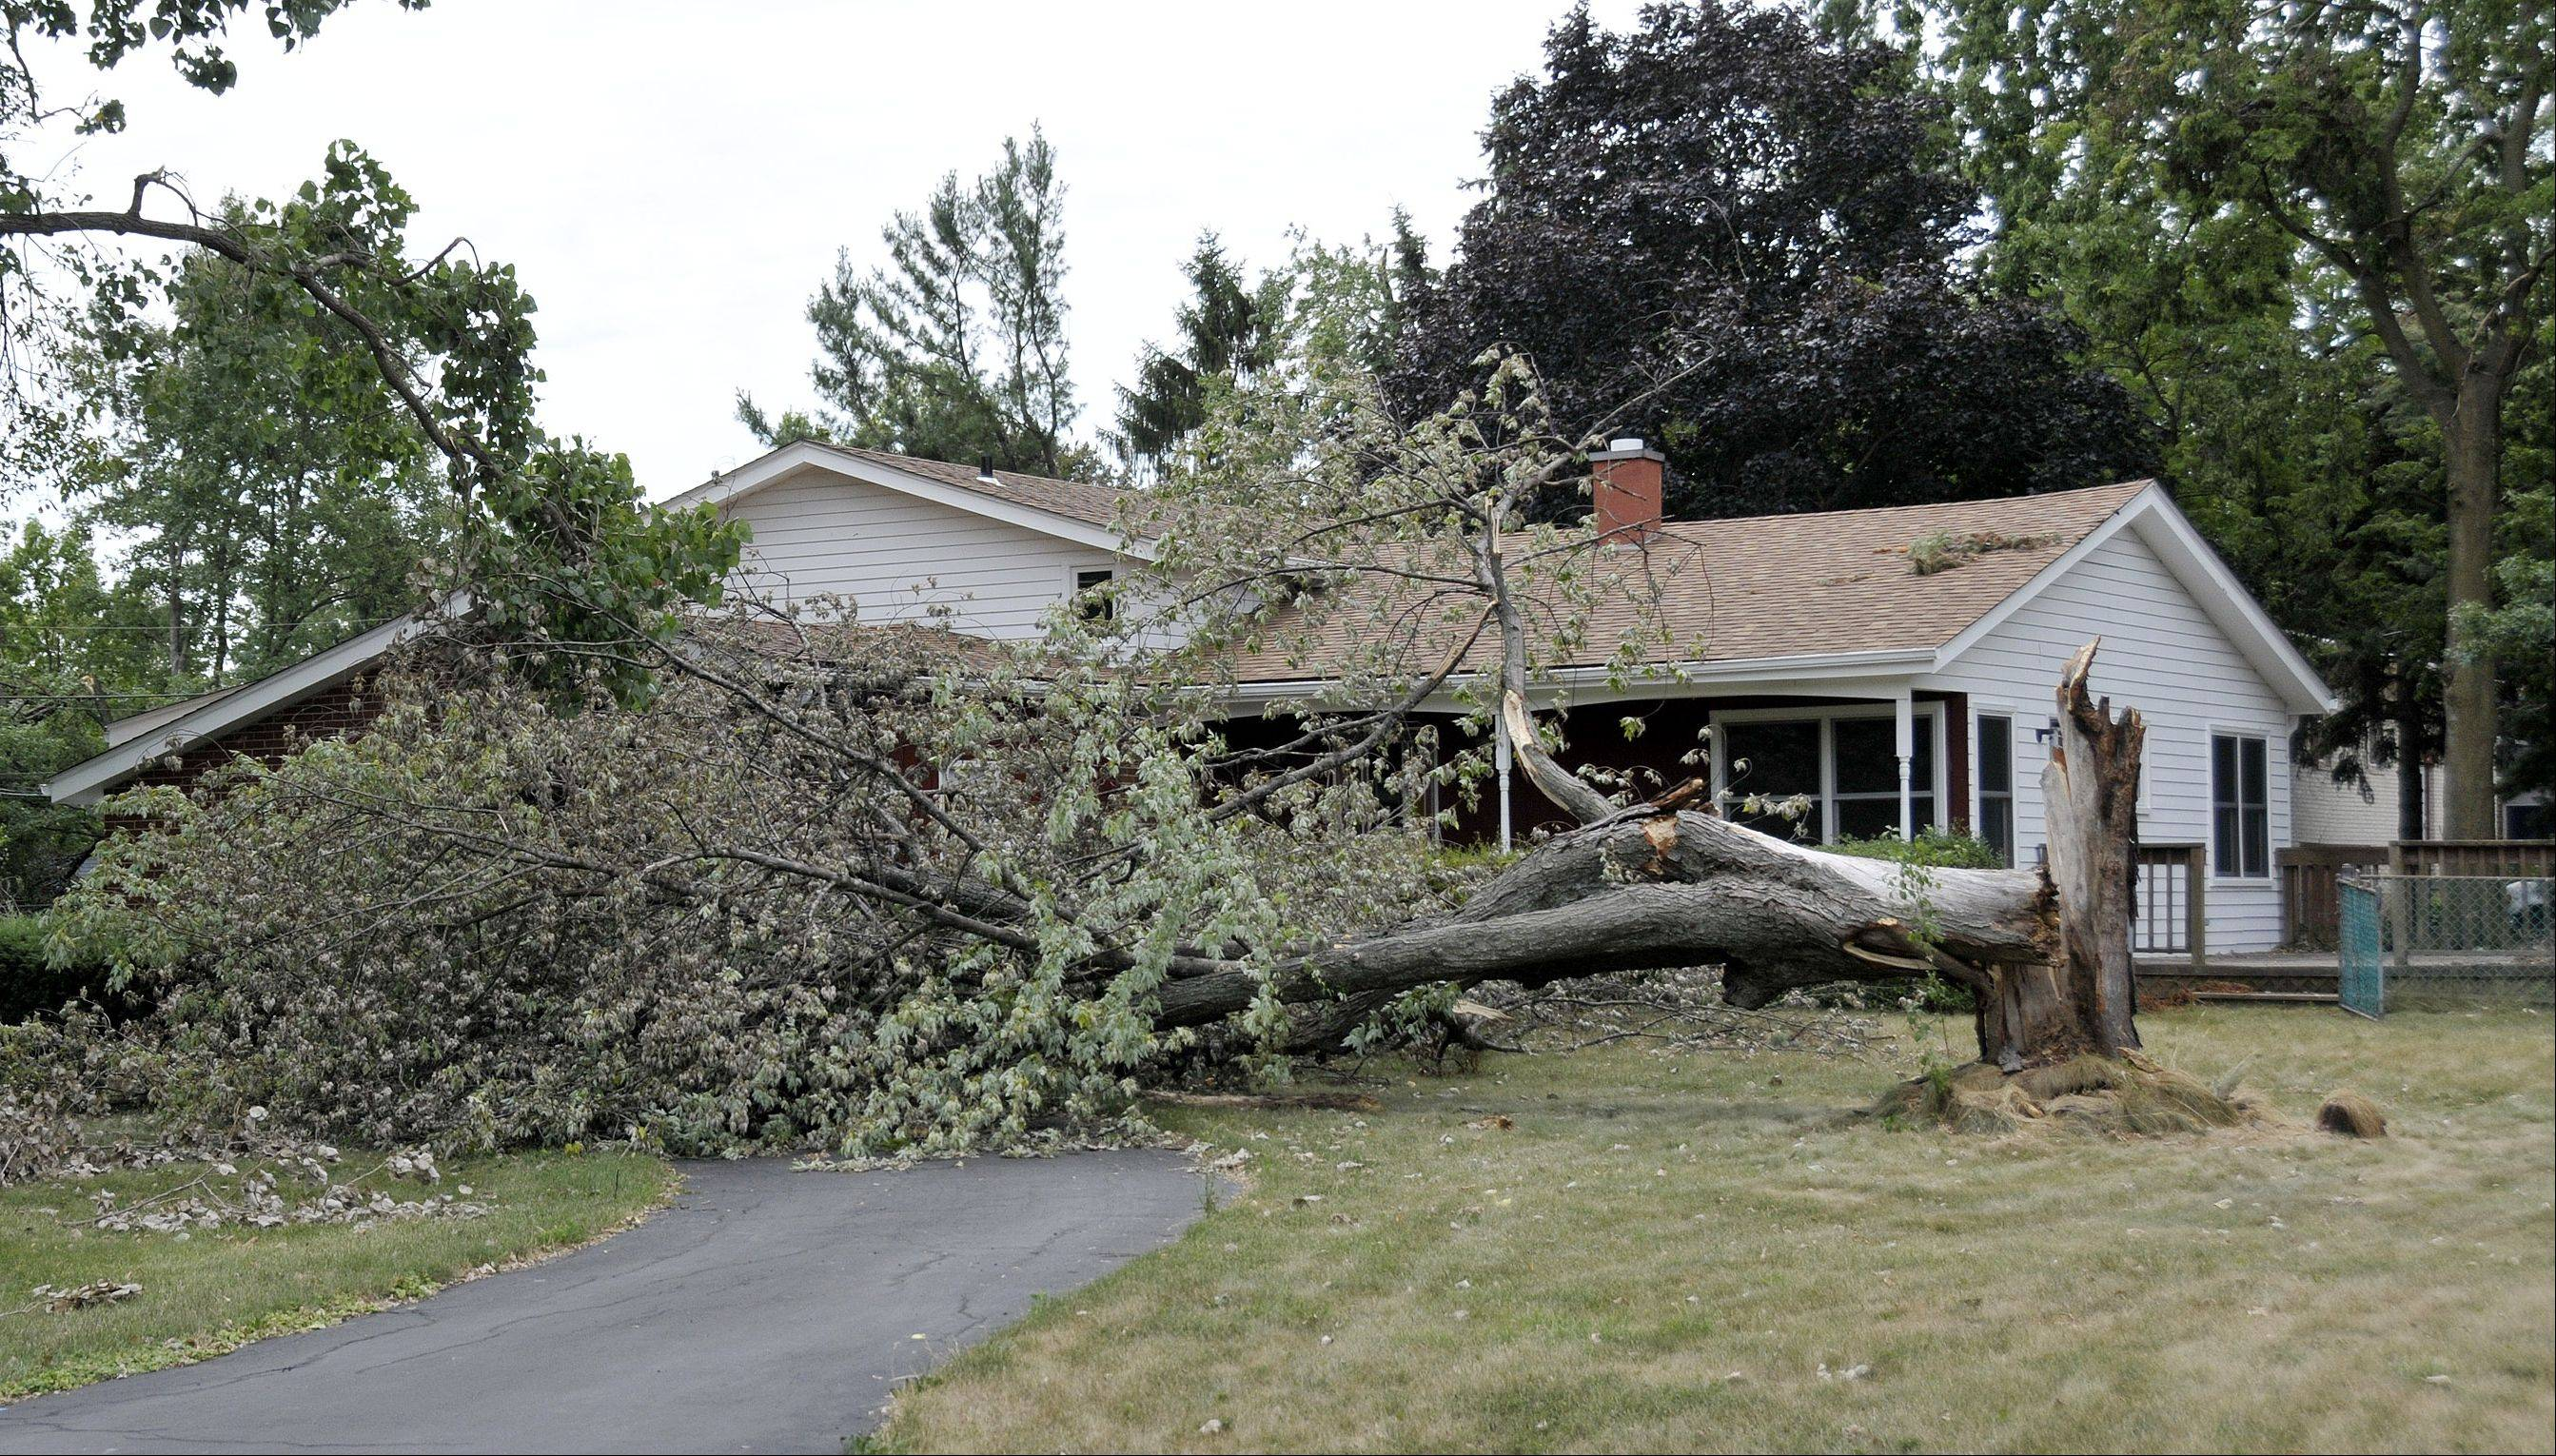 A week after devastating winds blew through an unincorporated area of Milton Township between Carol Stream and Winfield, a downed tree still blocks the driveway of a house at Woods Avenue and National Street.